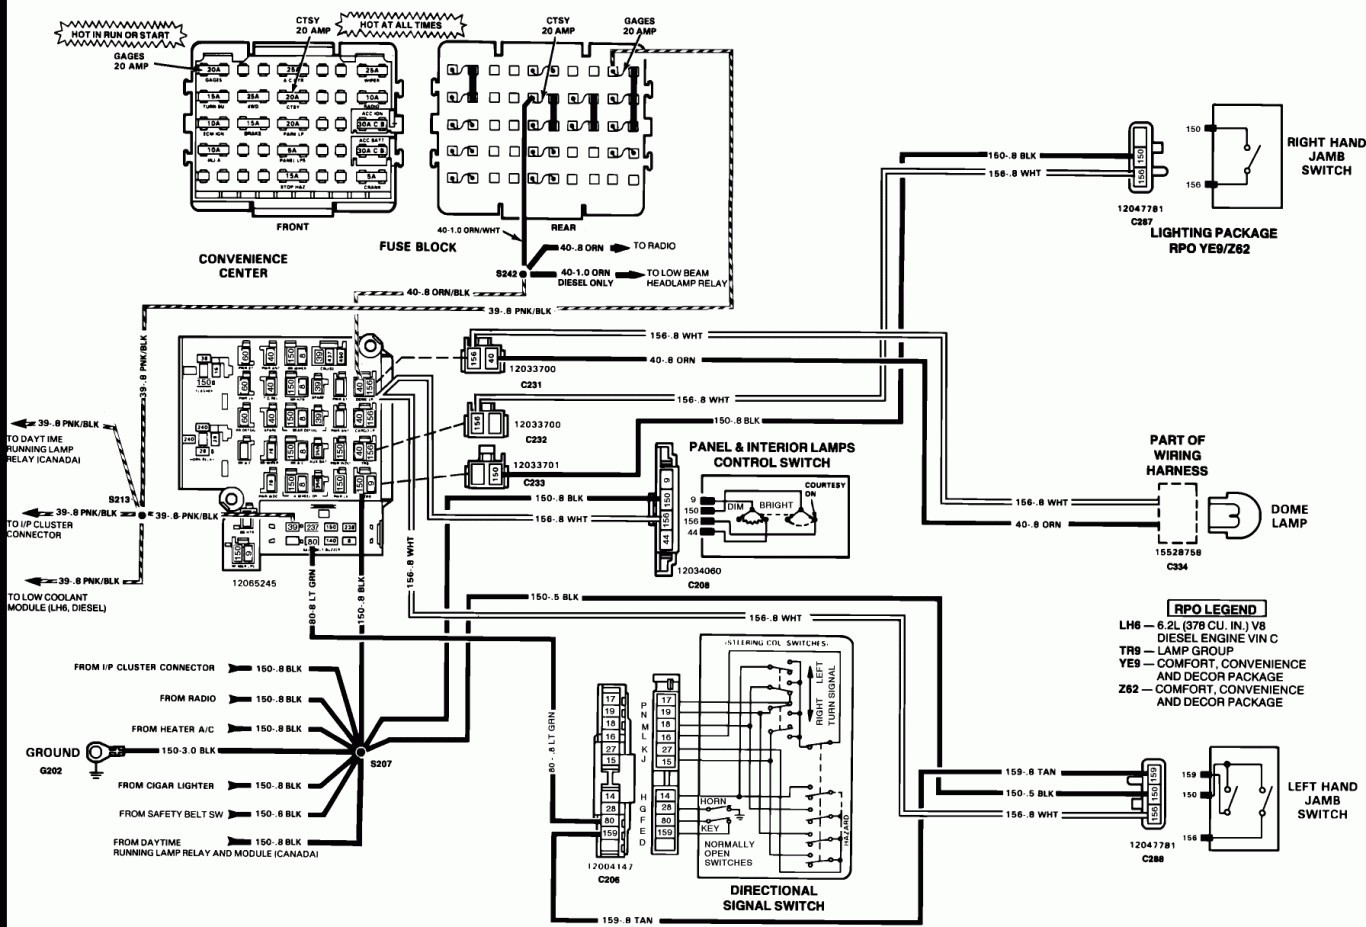 Tail Light Wiring Diagram 1995 Chevy Truck 018 At